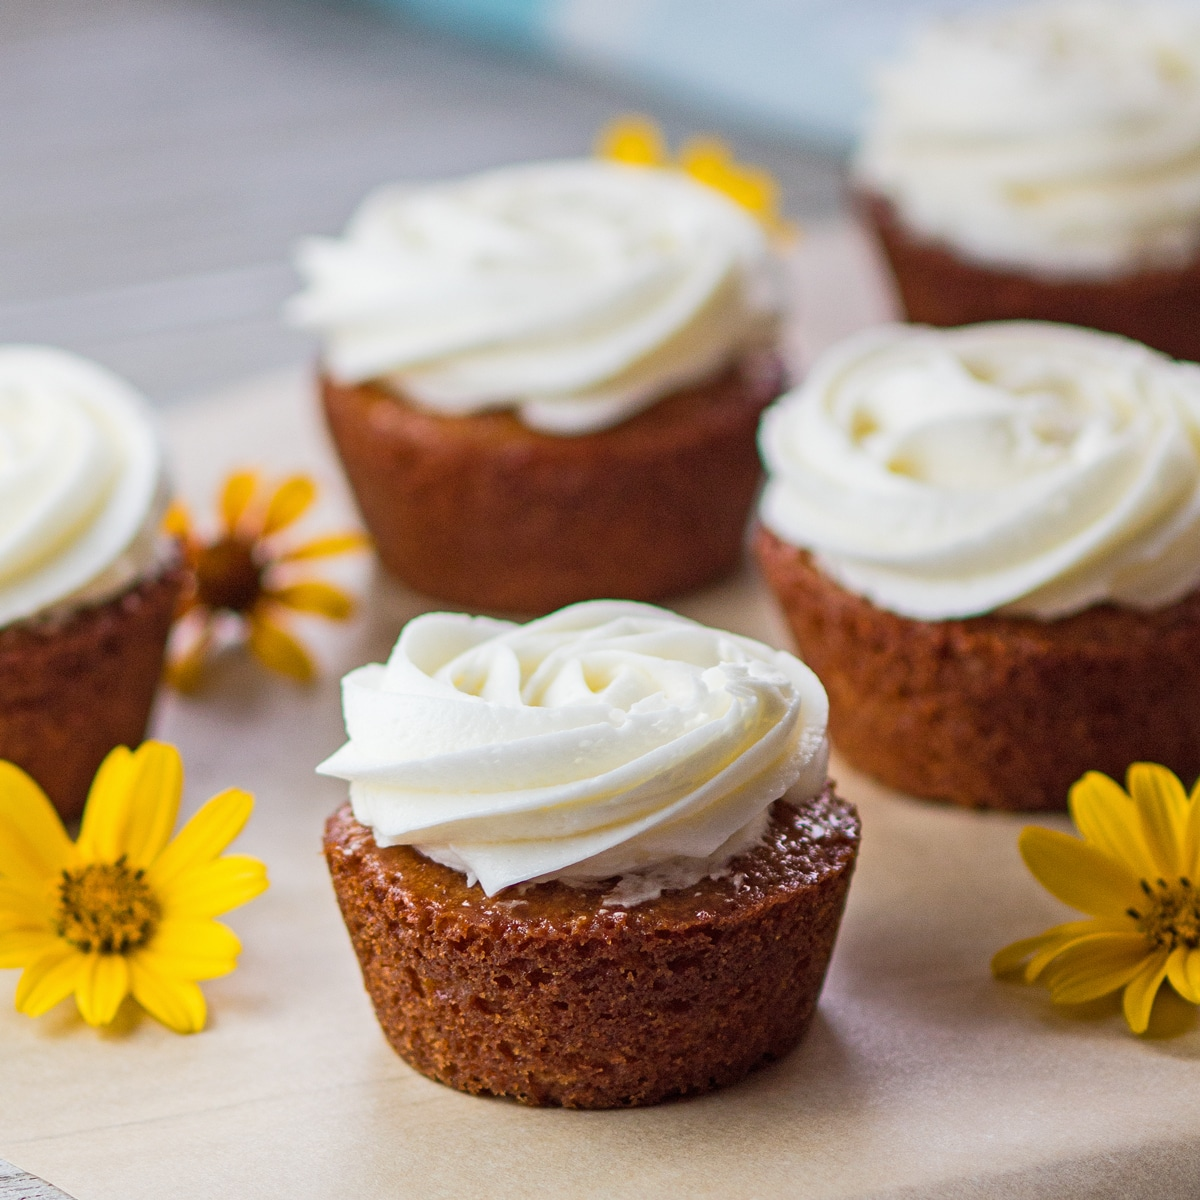 Large square image of delicious honey cakes drizzled with honey and topped with frosting.